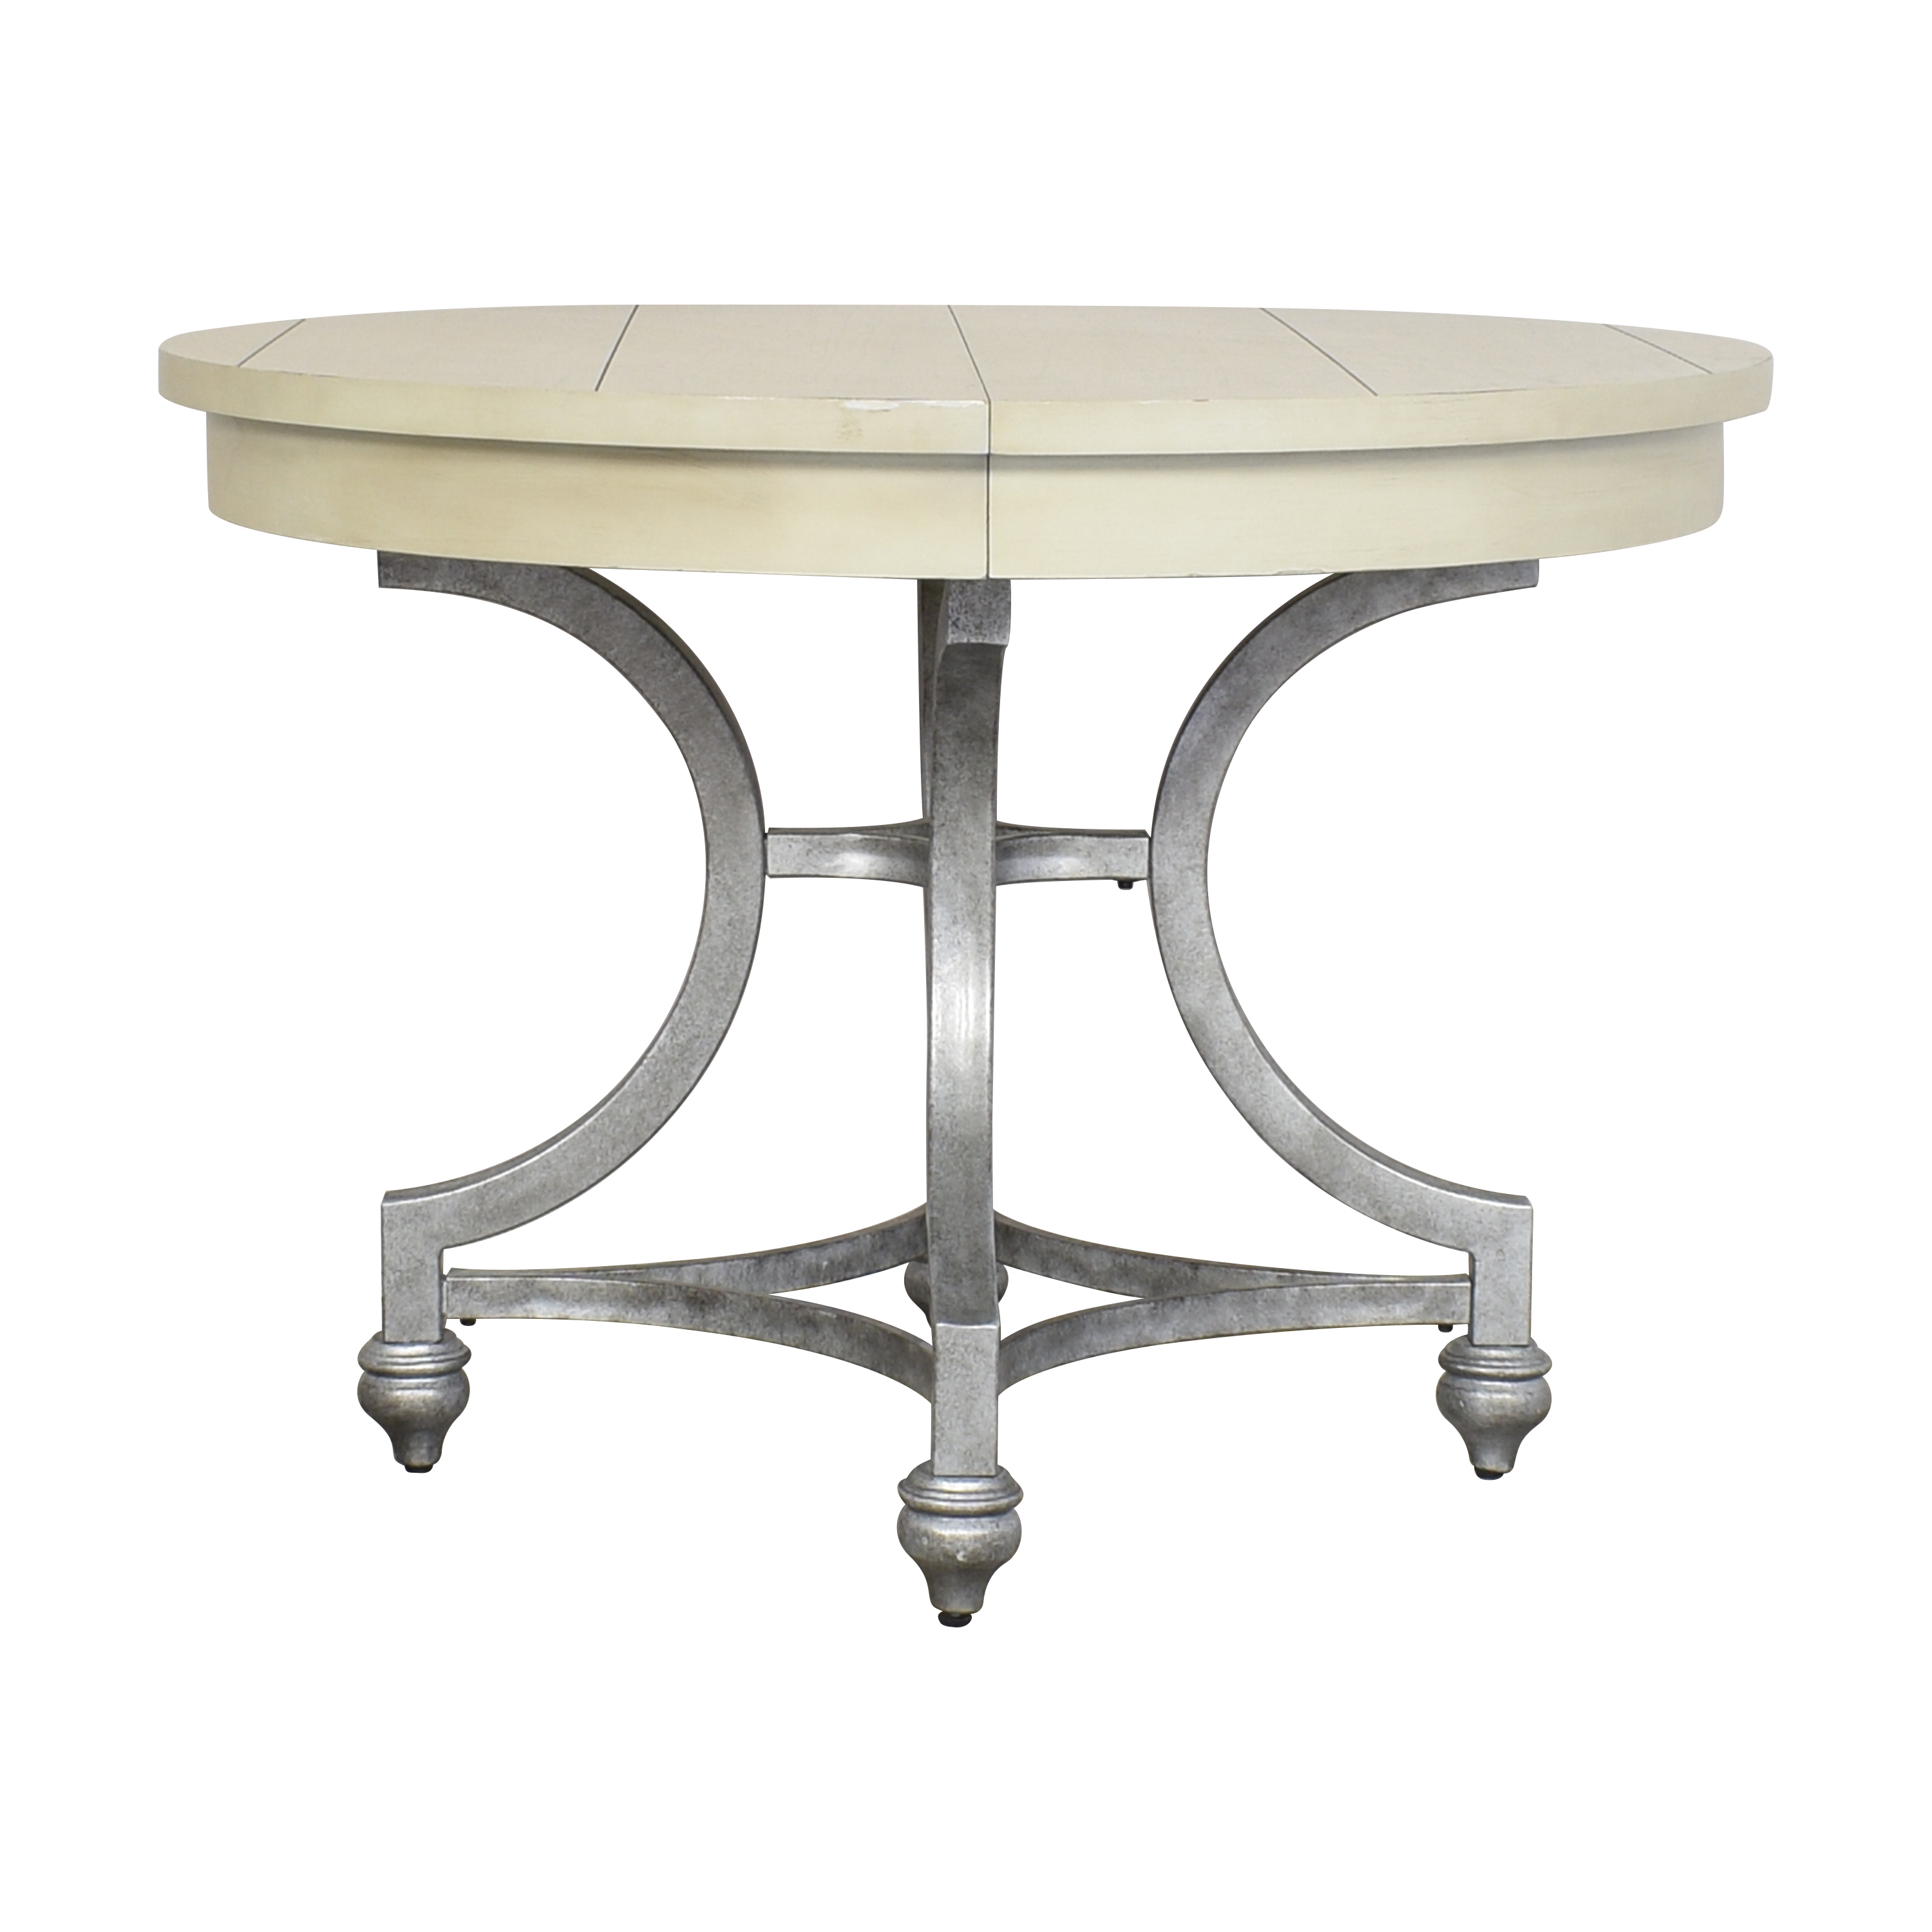 Beachcrest Home Beachcrest Home Dining Table dimensions